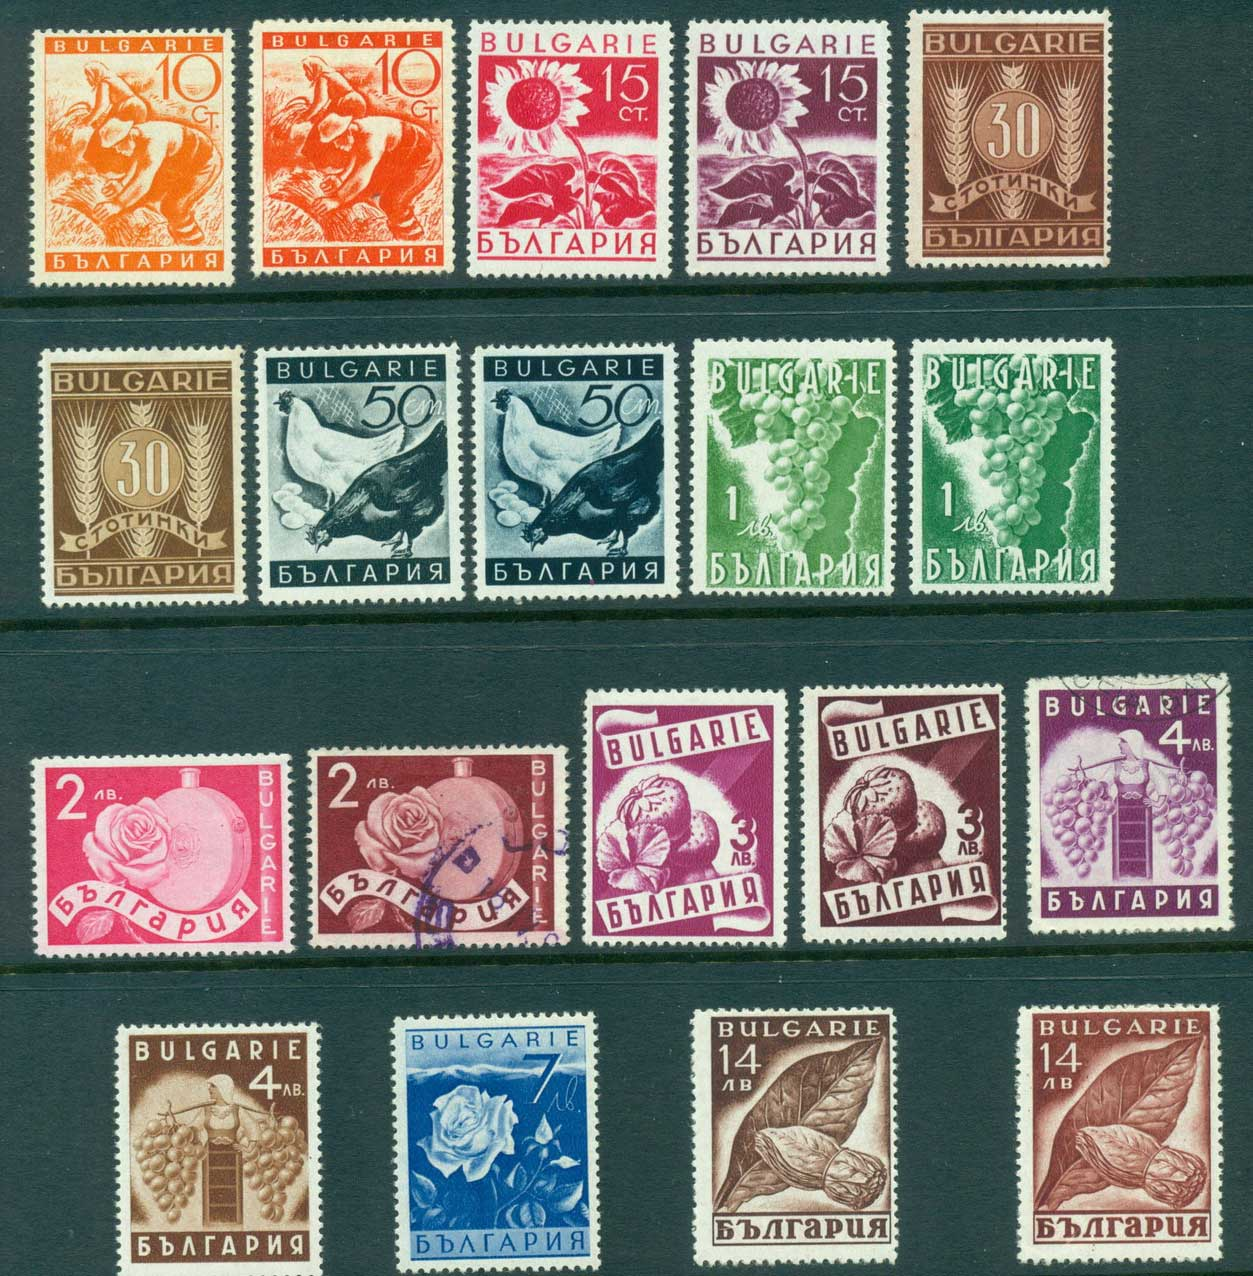 Bulgaria 1938 National Products (no 7a vio blue) MH/FU